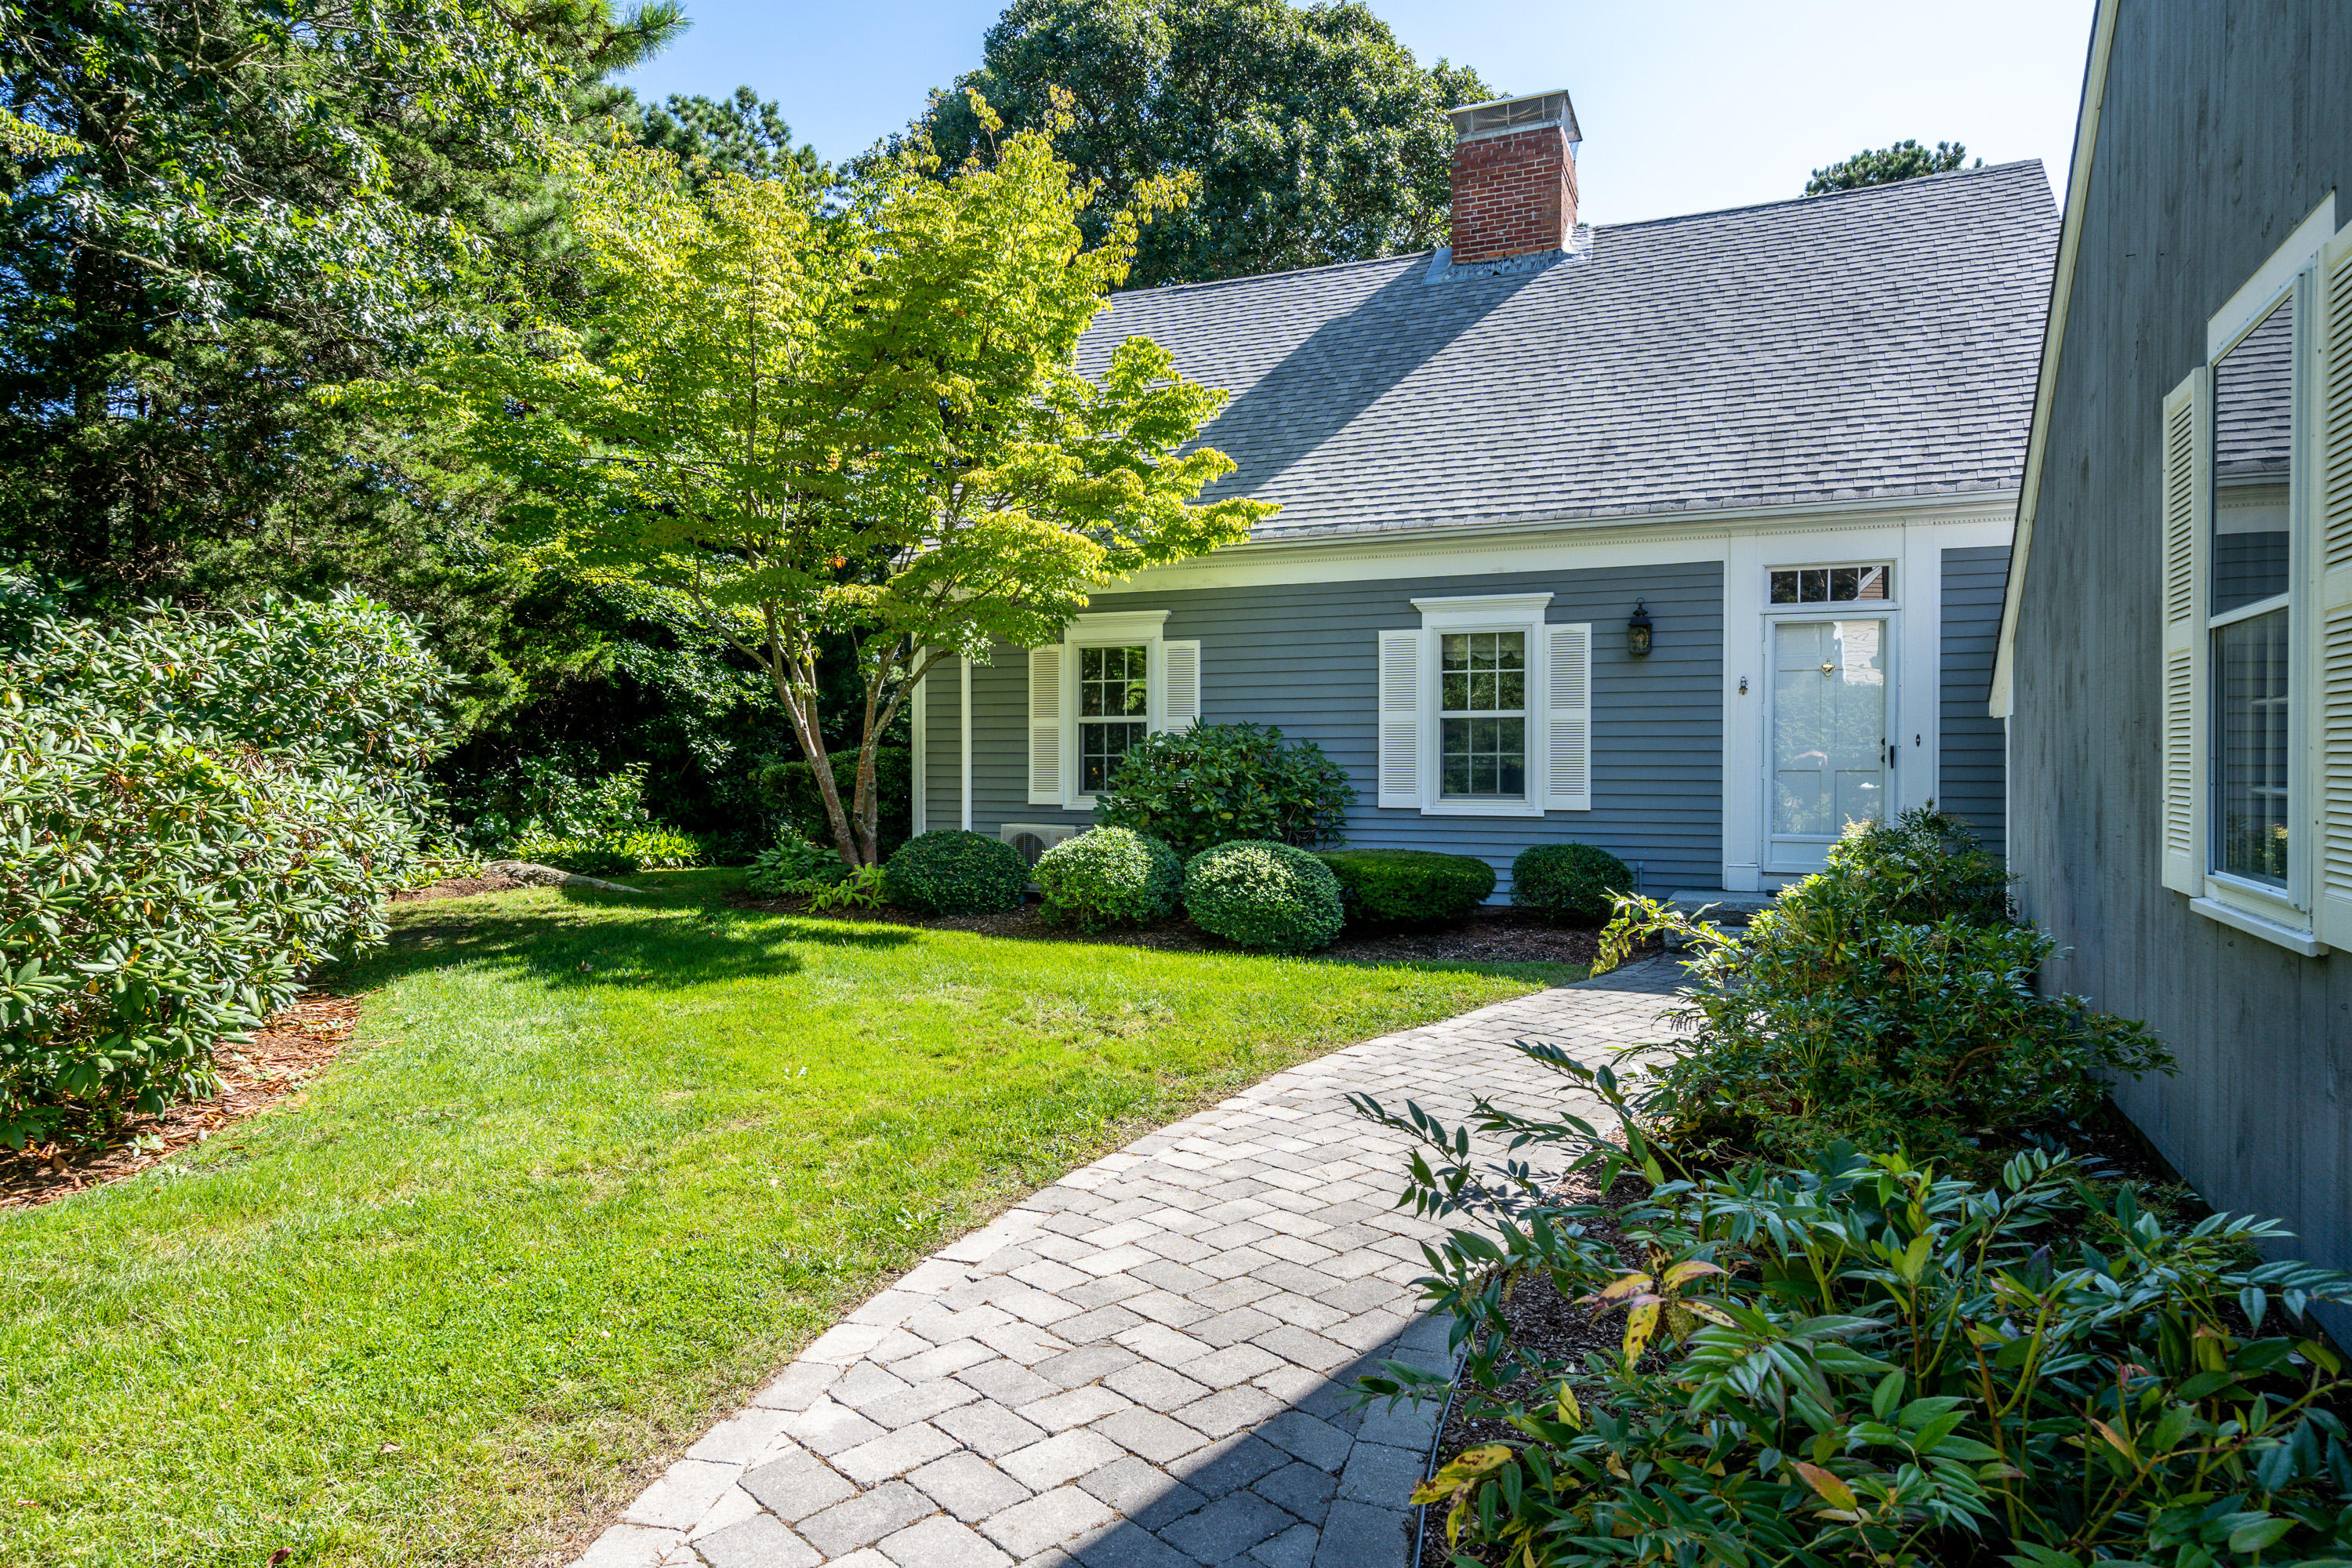 151 Sears Road, East Dennis MA, 02641 details